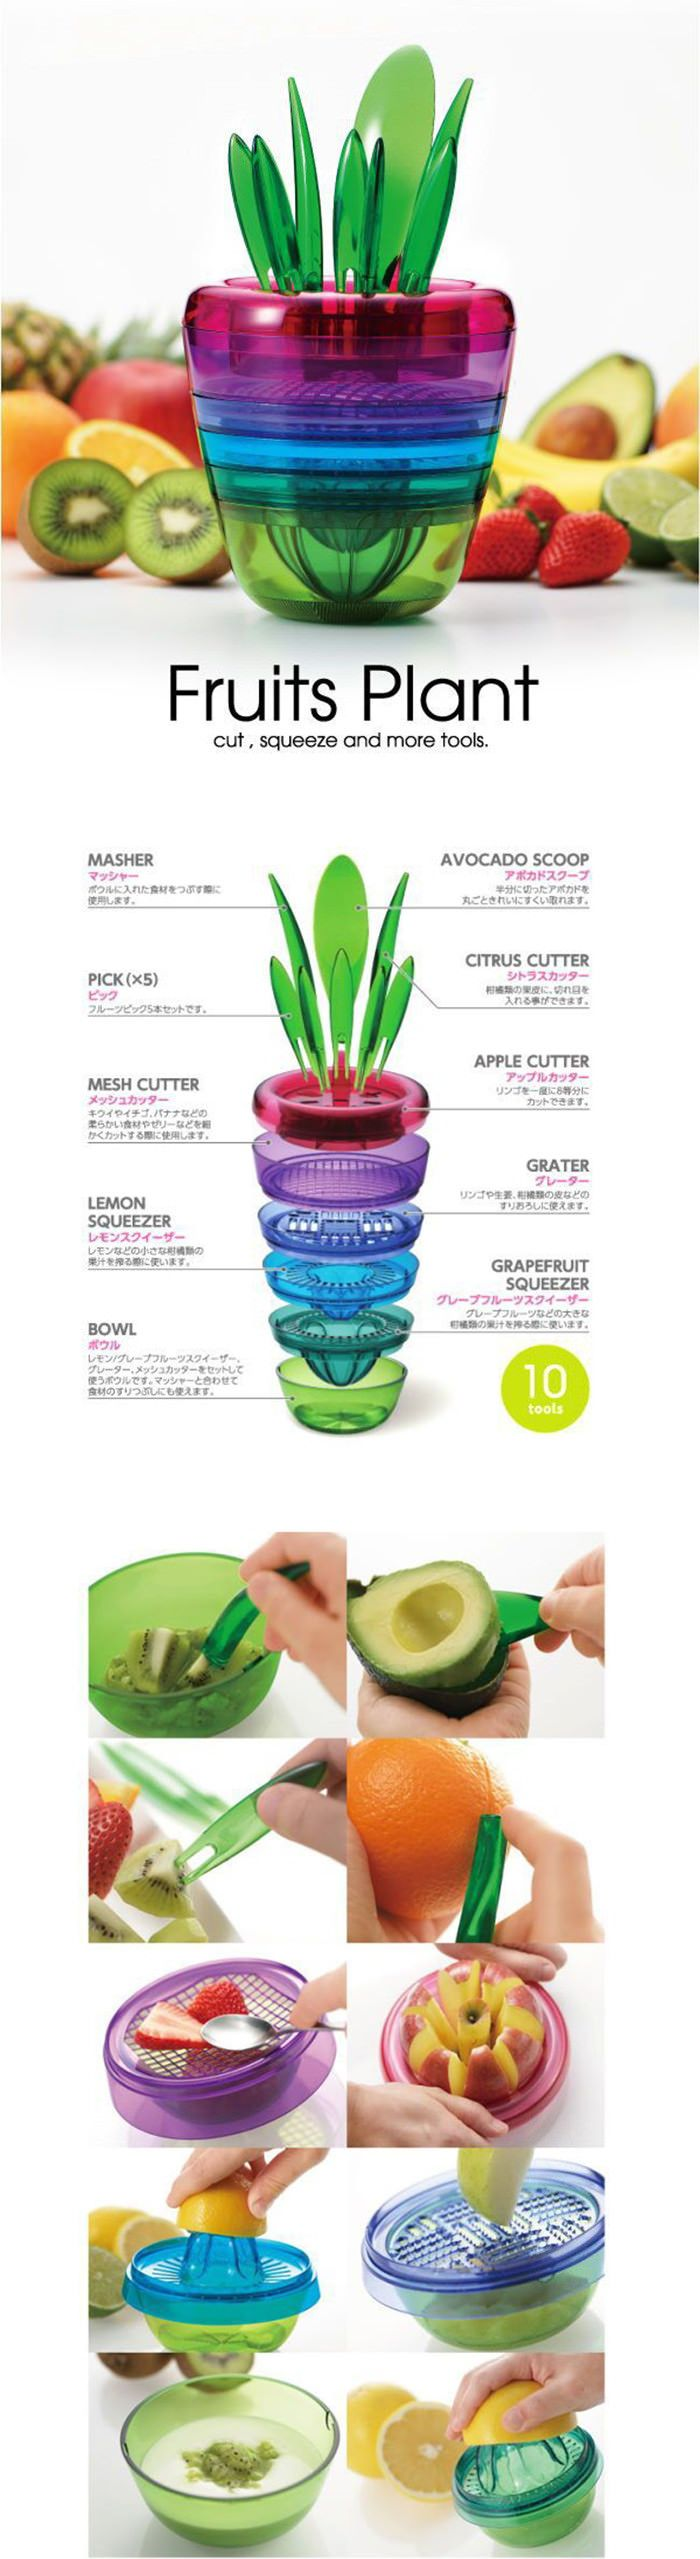 21 best Kitchen gadgets images on Pinterest | Cooking ware, Cooking ...